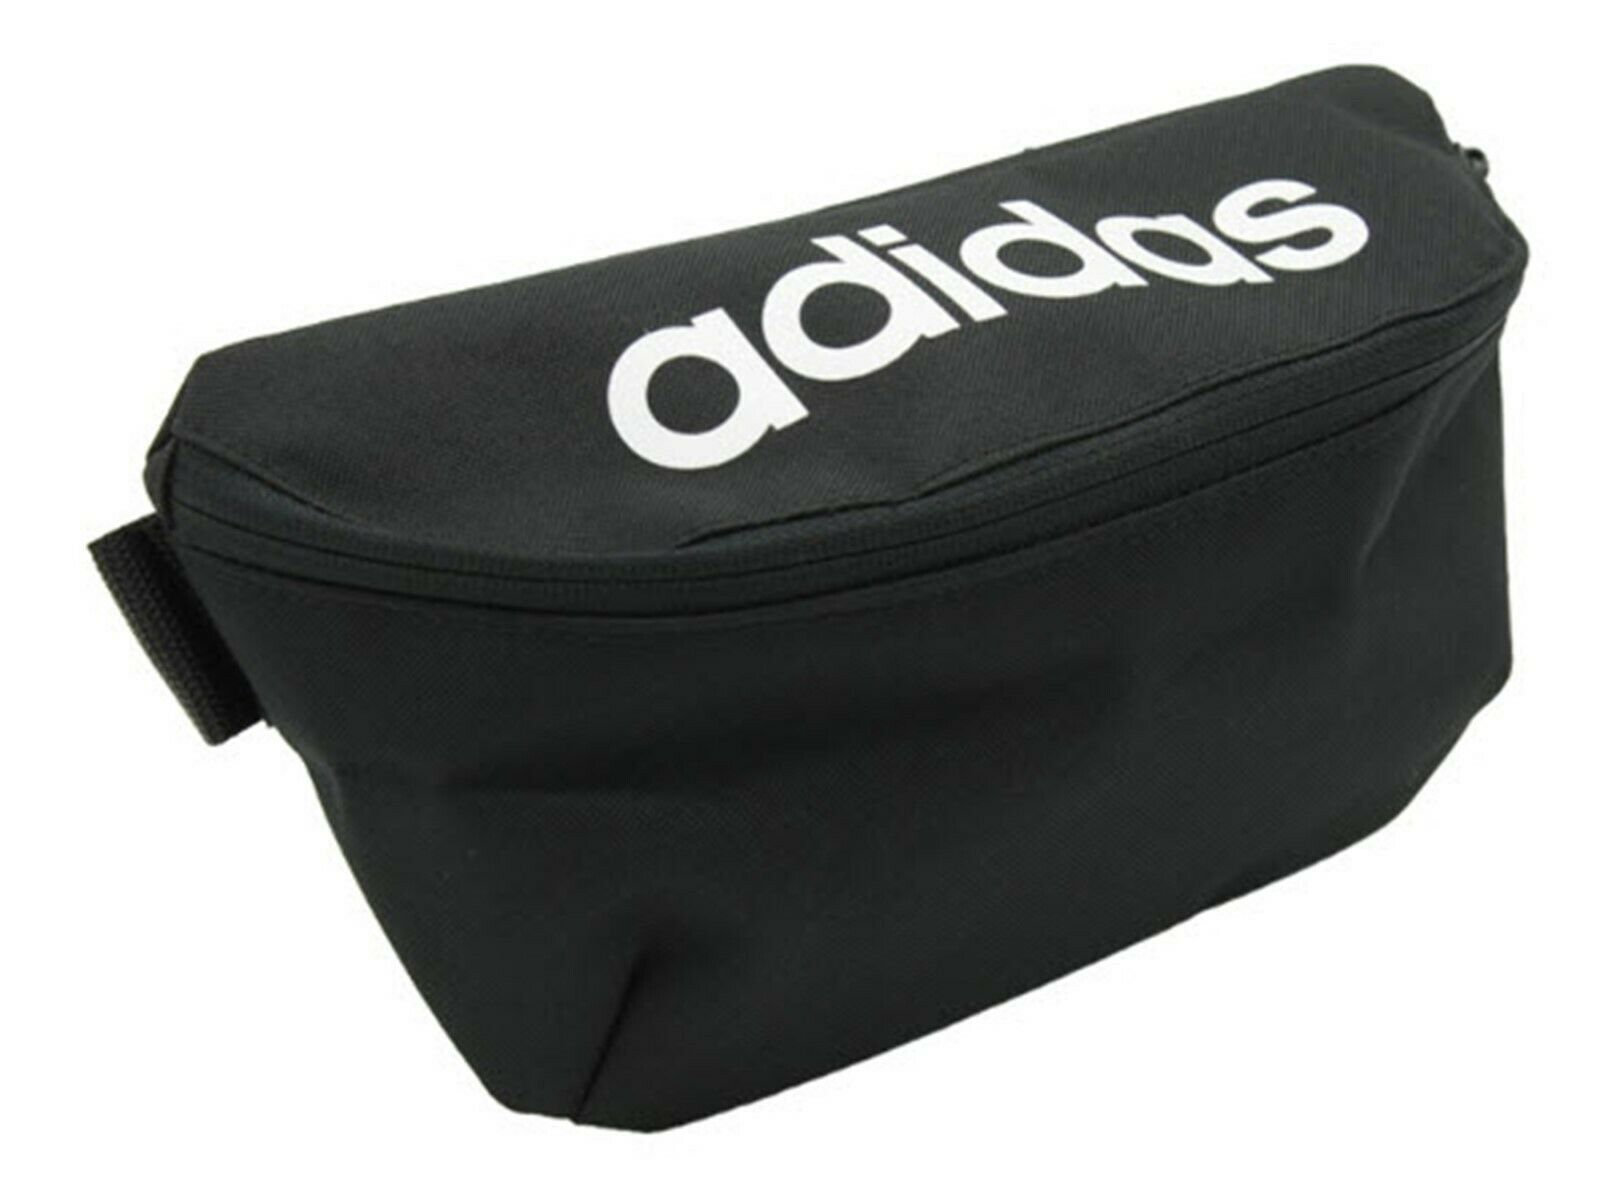 Adidas Unisex DAILY Waist Bags Running Travel Cross GYM Bag - Valley Sports UK